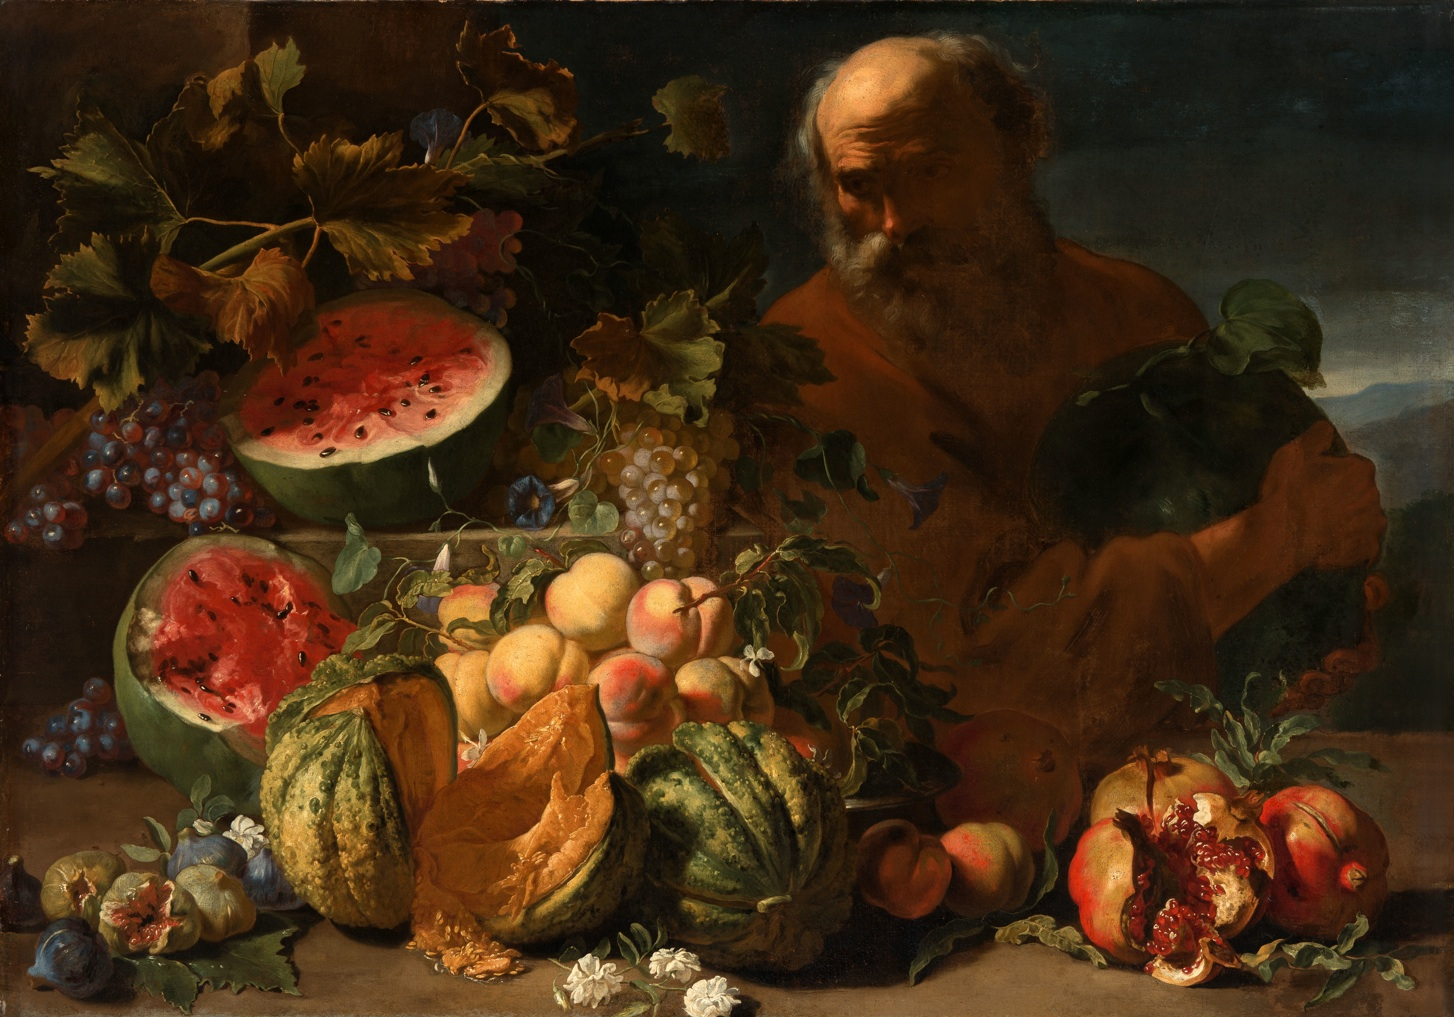 https://upload.wikimedia.org/wikipedia/commons/8/8e/Abraham_Brueghel_-_Still_life_of_fruit_with_a_man.jpg